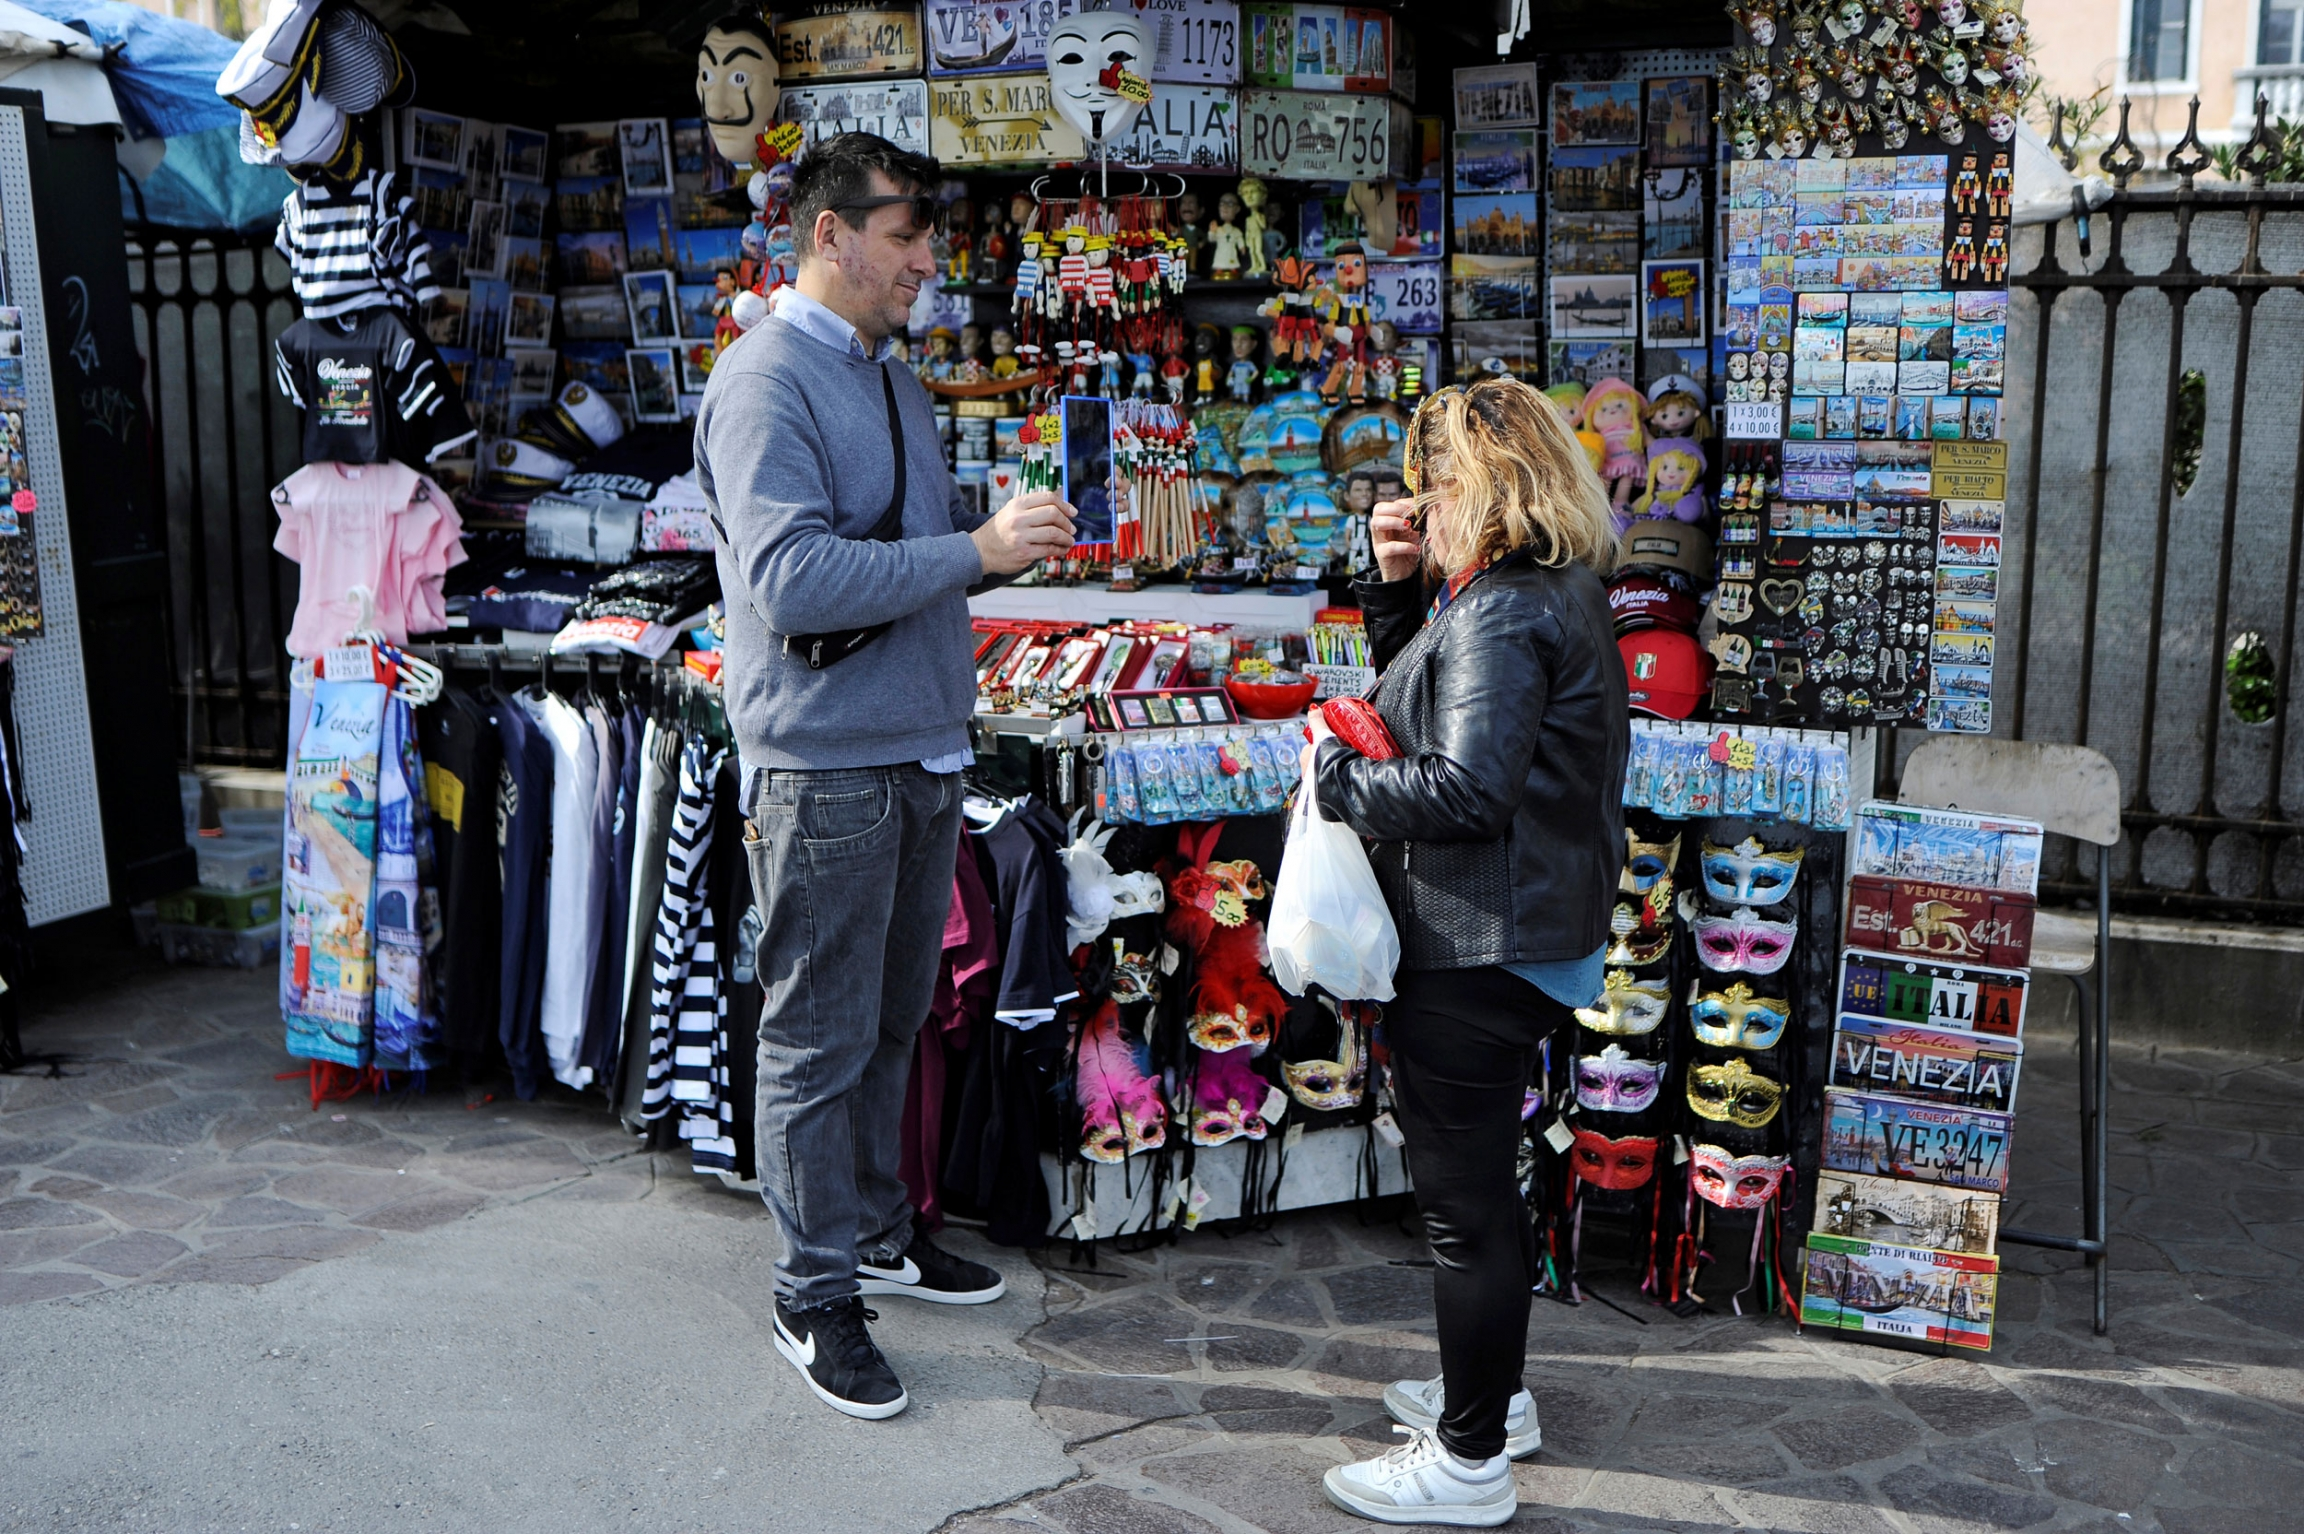 A man in a gray sweater is shown standing next to a souvenir stand helping a woman customer.